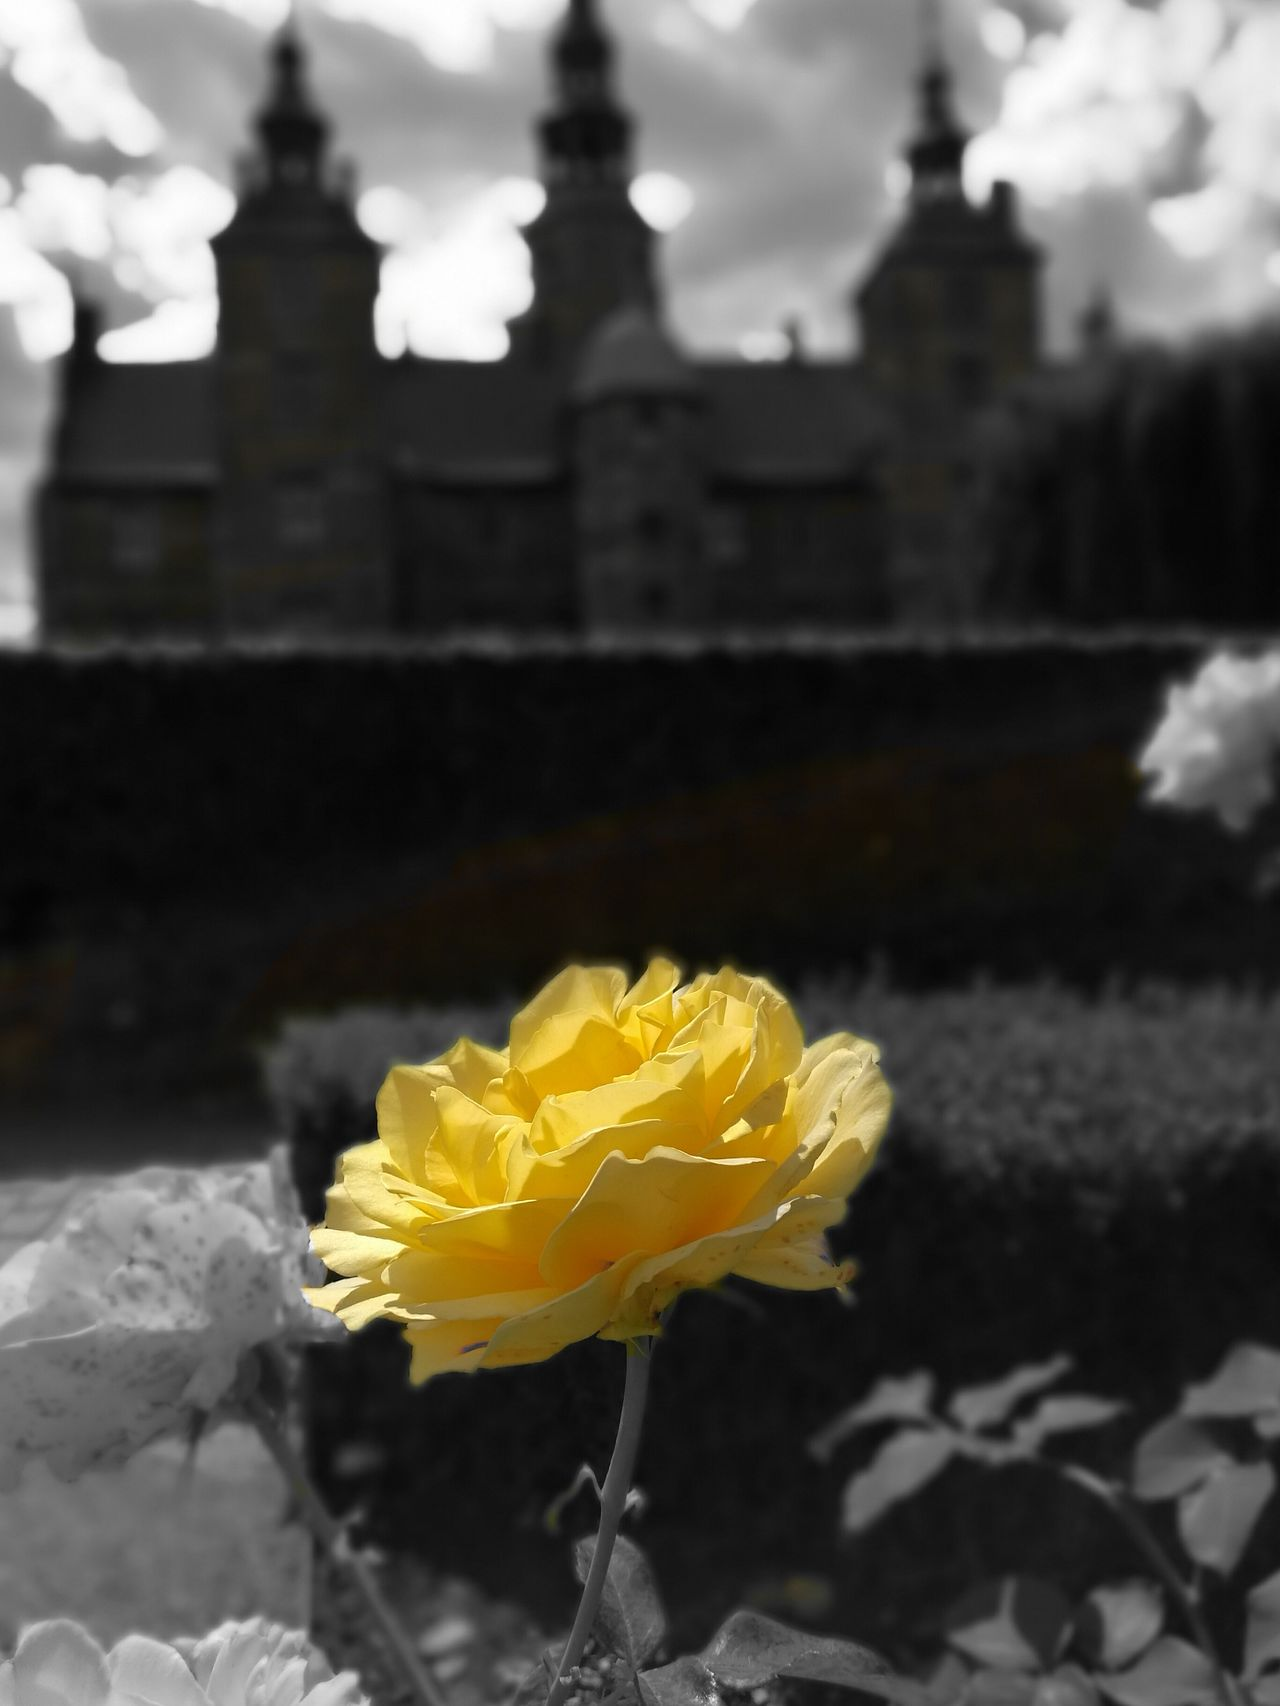 Rosenborg castle Huaweiphotography HuaweiP9 The 00 Mission Kings Garden Kings Garden Copenhagen Roses Rosé Yellow Flower Yellow Rose Blackandwhite Rosenborg Slot